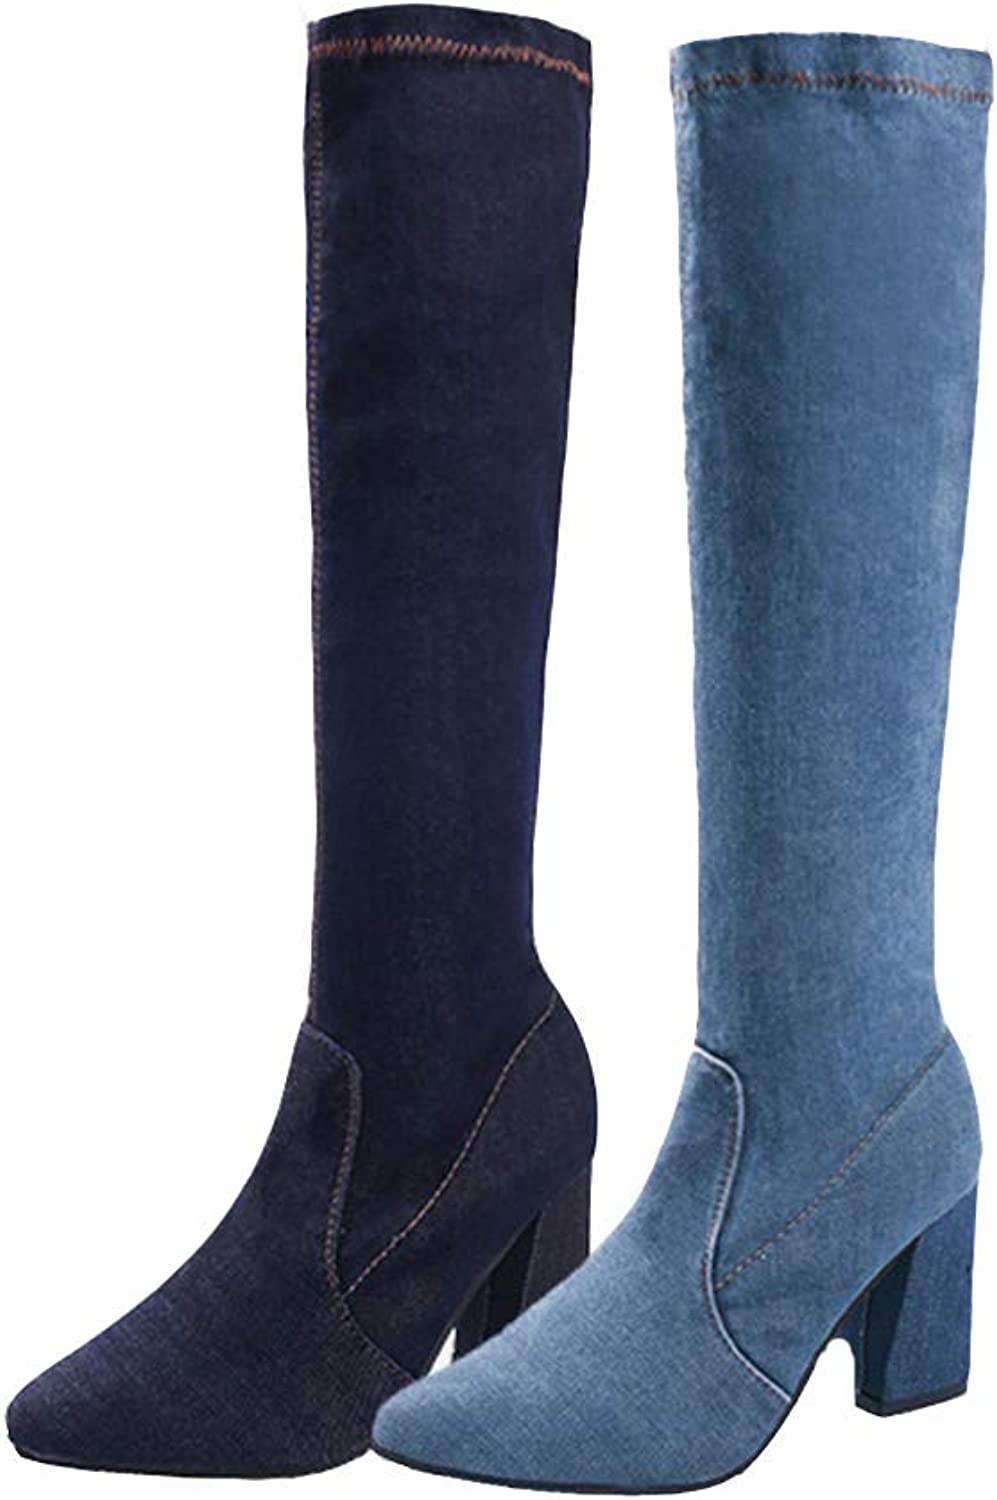 T-JULY Women's Denim Knee High Boots Autumn High Heels for Female Casual Footwear Sewing Mid Calf Botas Thick Heel shoes